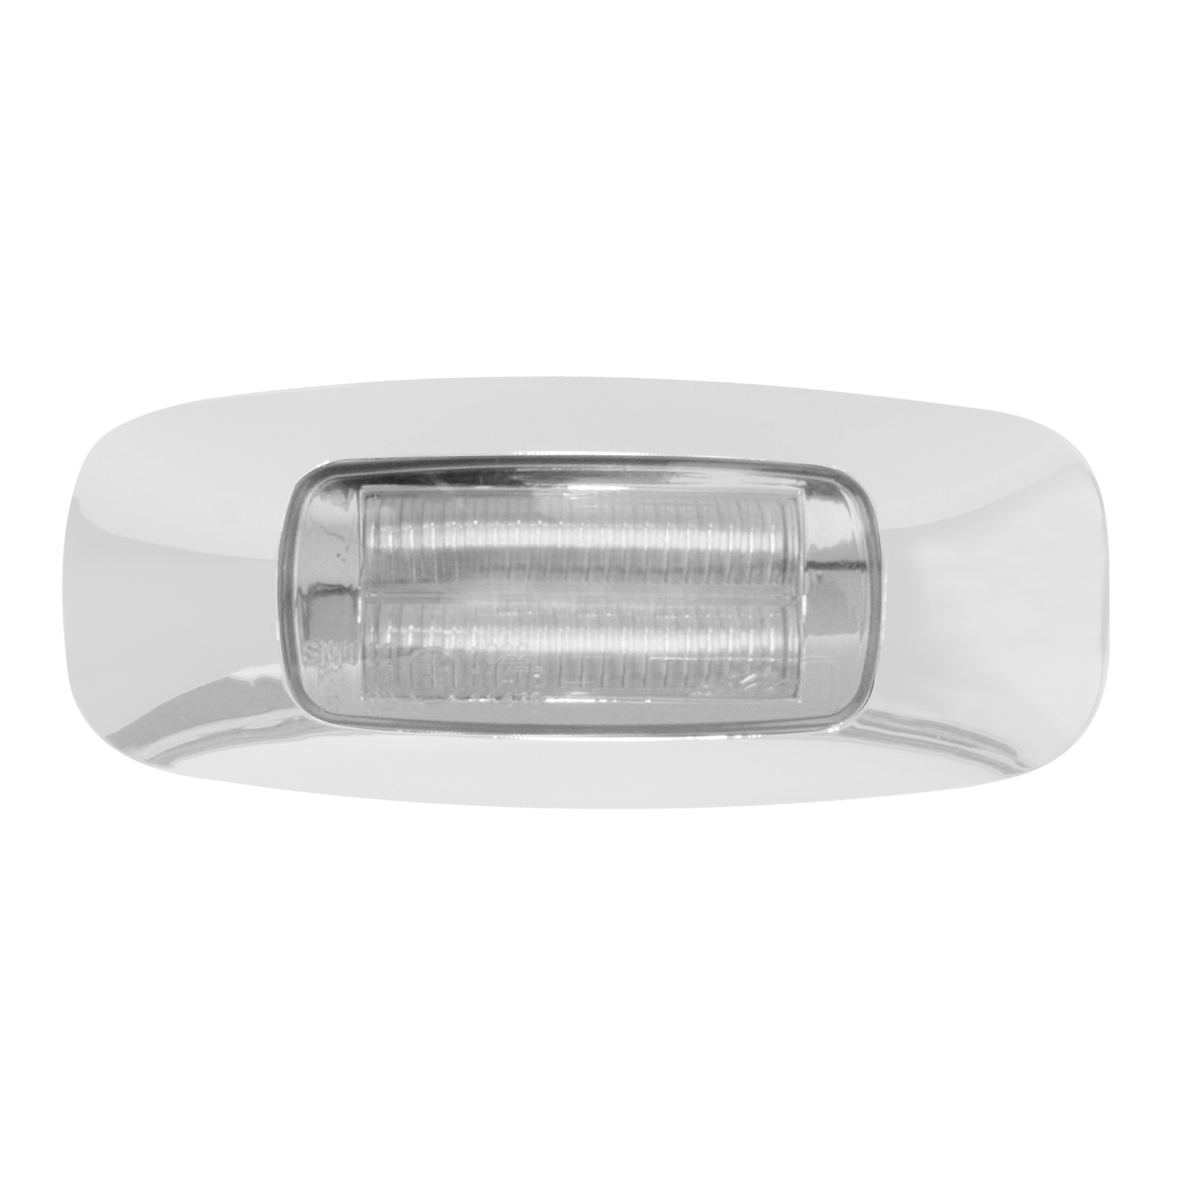 "74721, 74723 & 74724 3-1/2"" Dual Function Rectangular Prime LED Marker Light in Clear Lens"